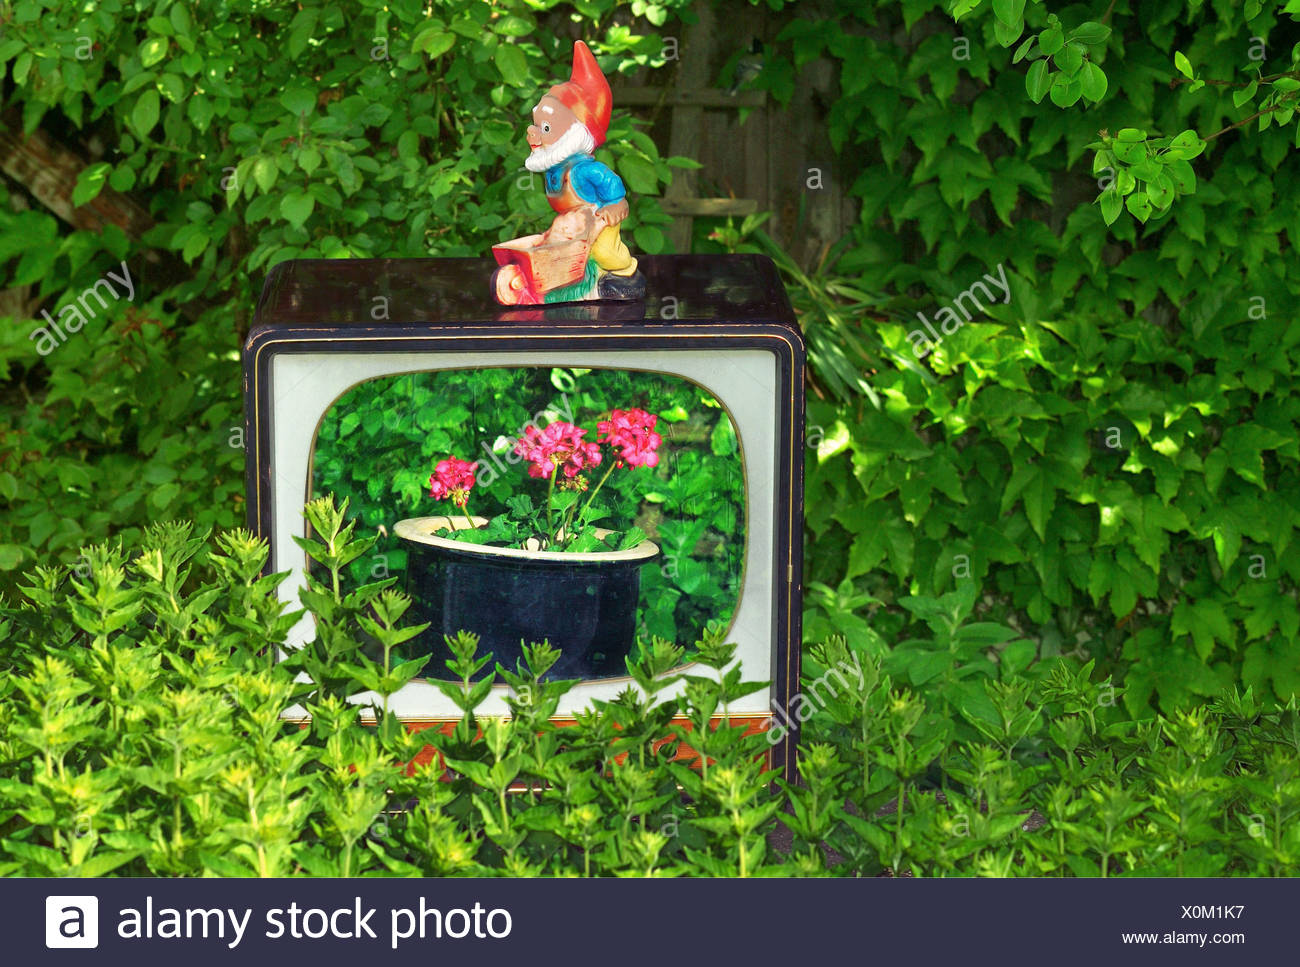 oddity, garden gnome standing on TV case, Additional-Rights-Clearance-Info-Not-Available - Stock Image